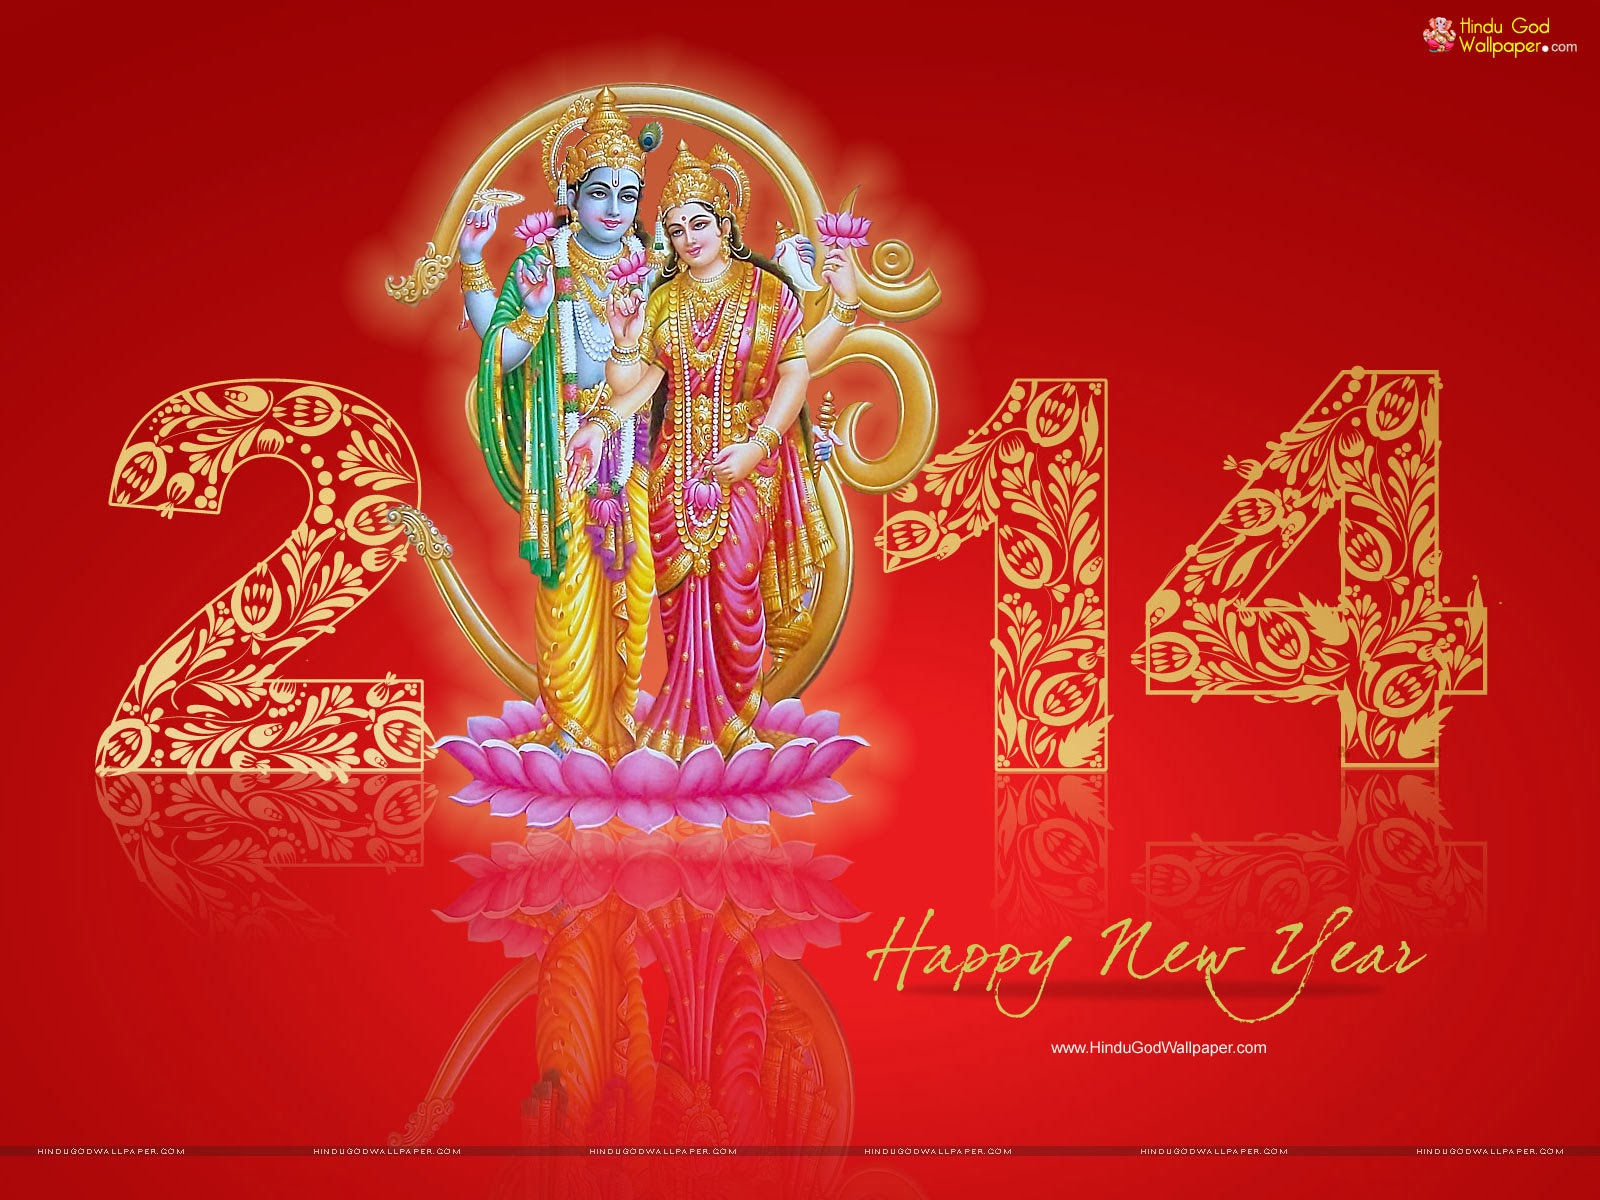 Happy new year 2014 hindu god wallpapers download voltagebd Images